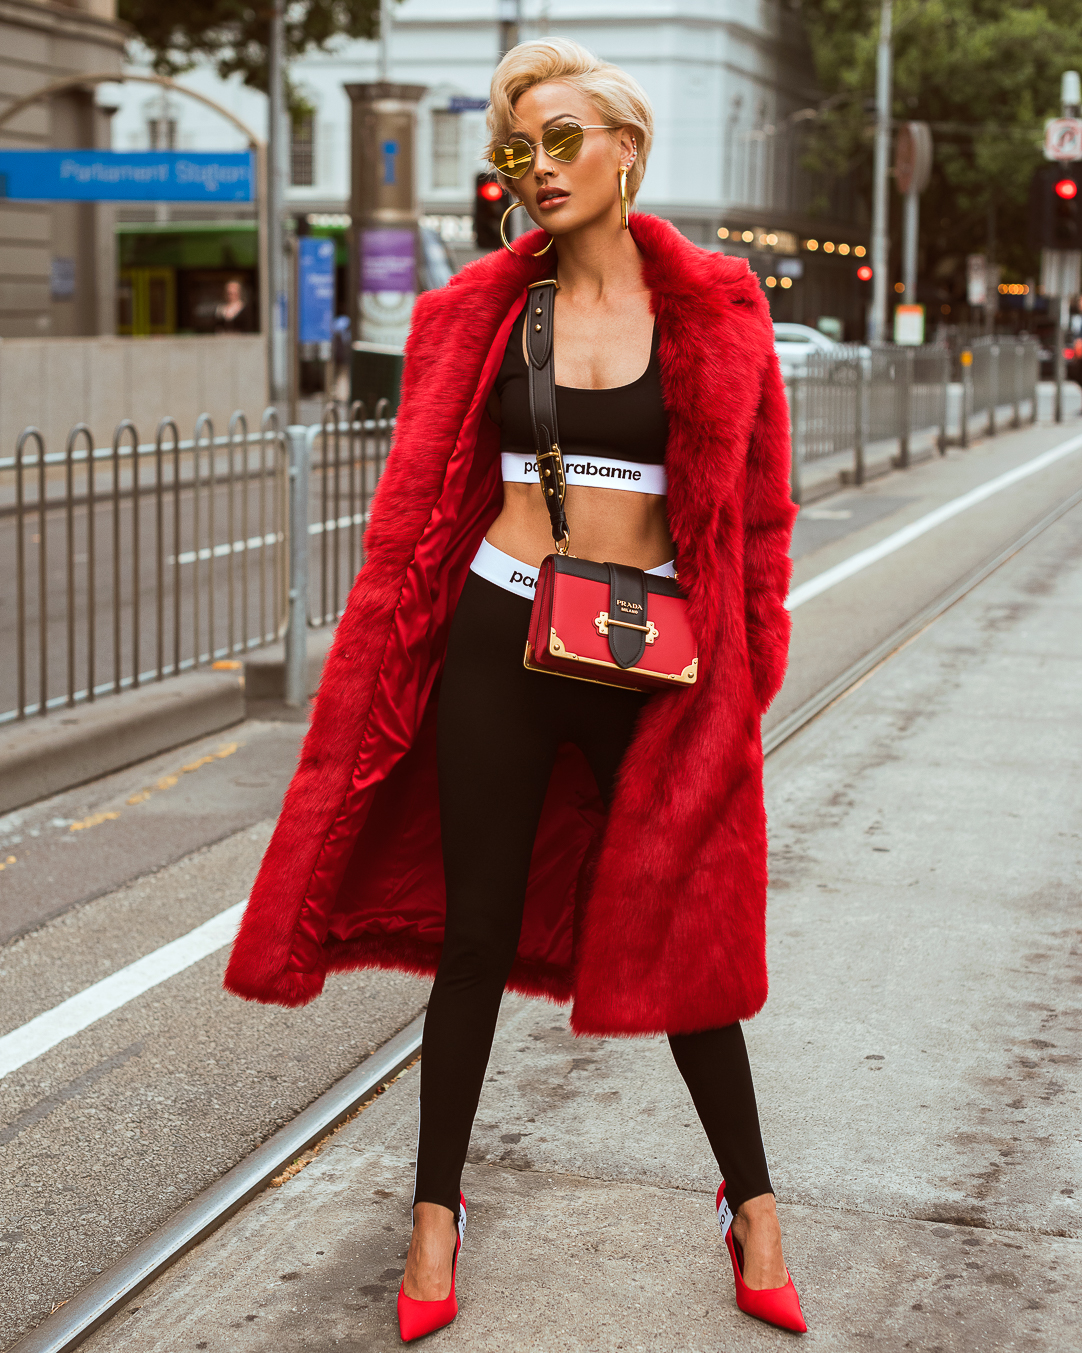 Micah-Gianneli-Australian-Melbourne-Fashion-Blogger-Influencer-Photography-Street-Style-Vogue-Editorial-Luisaviaroma-Prada-Cahier-Paco-Rabanne-Revolve-High-End-Luxury